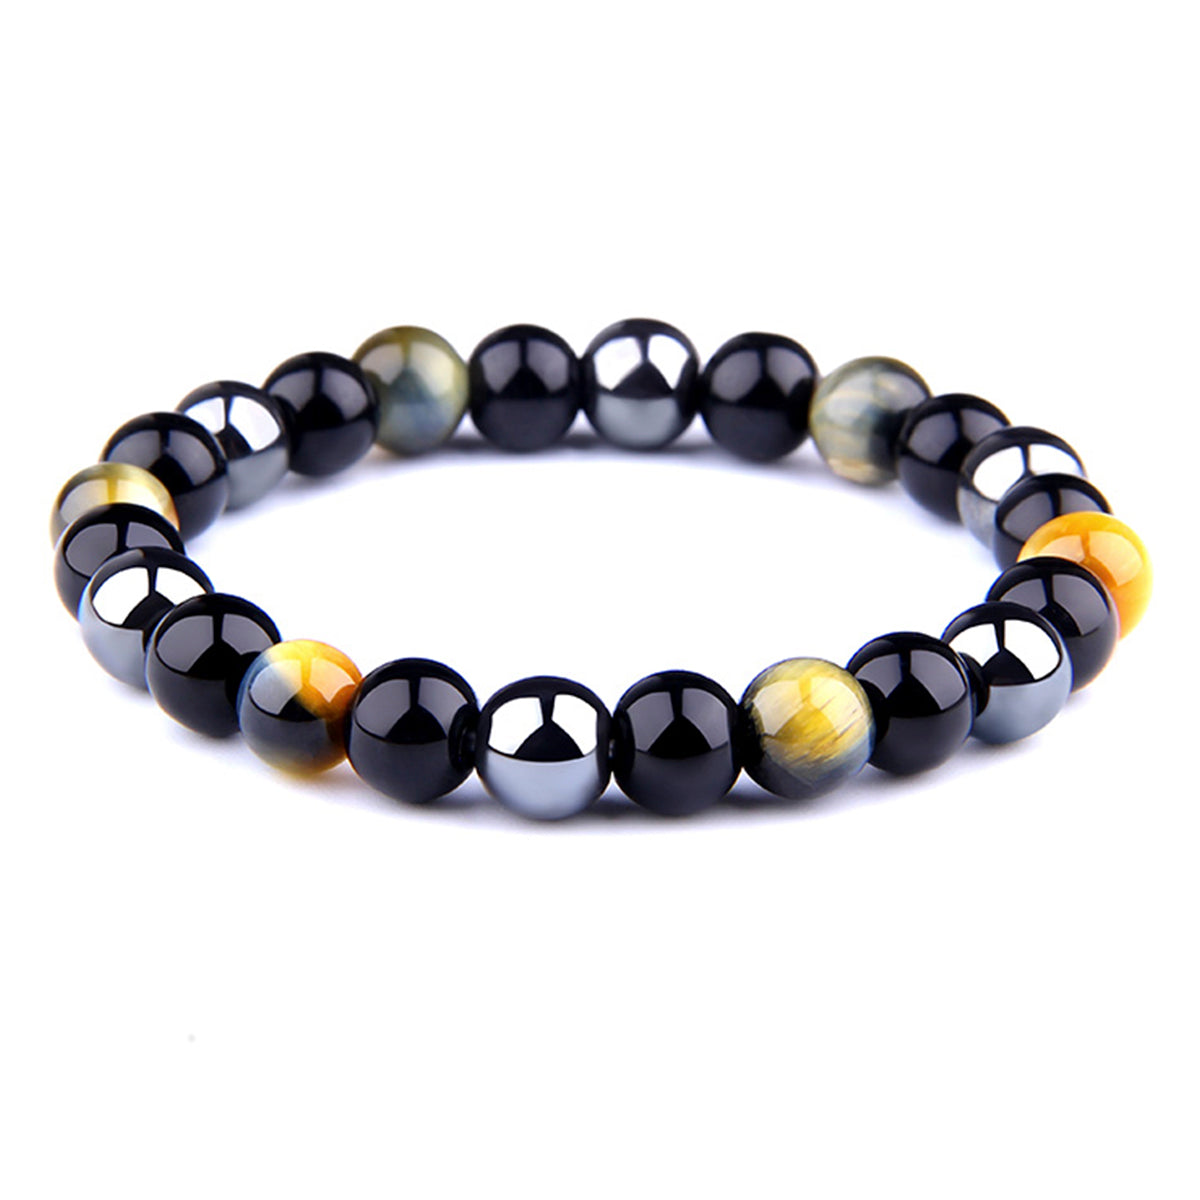 THREE-STONE BRACELET WITH AMBER GOLD TIGER EYE, HEMATITE AND BLACK ONYX